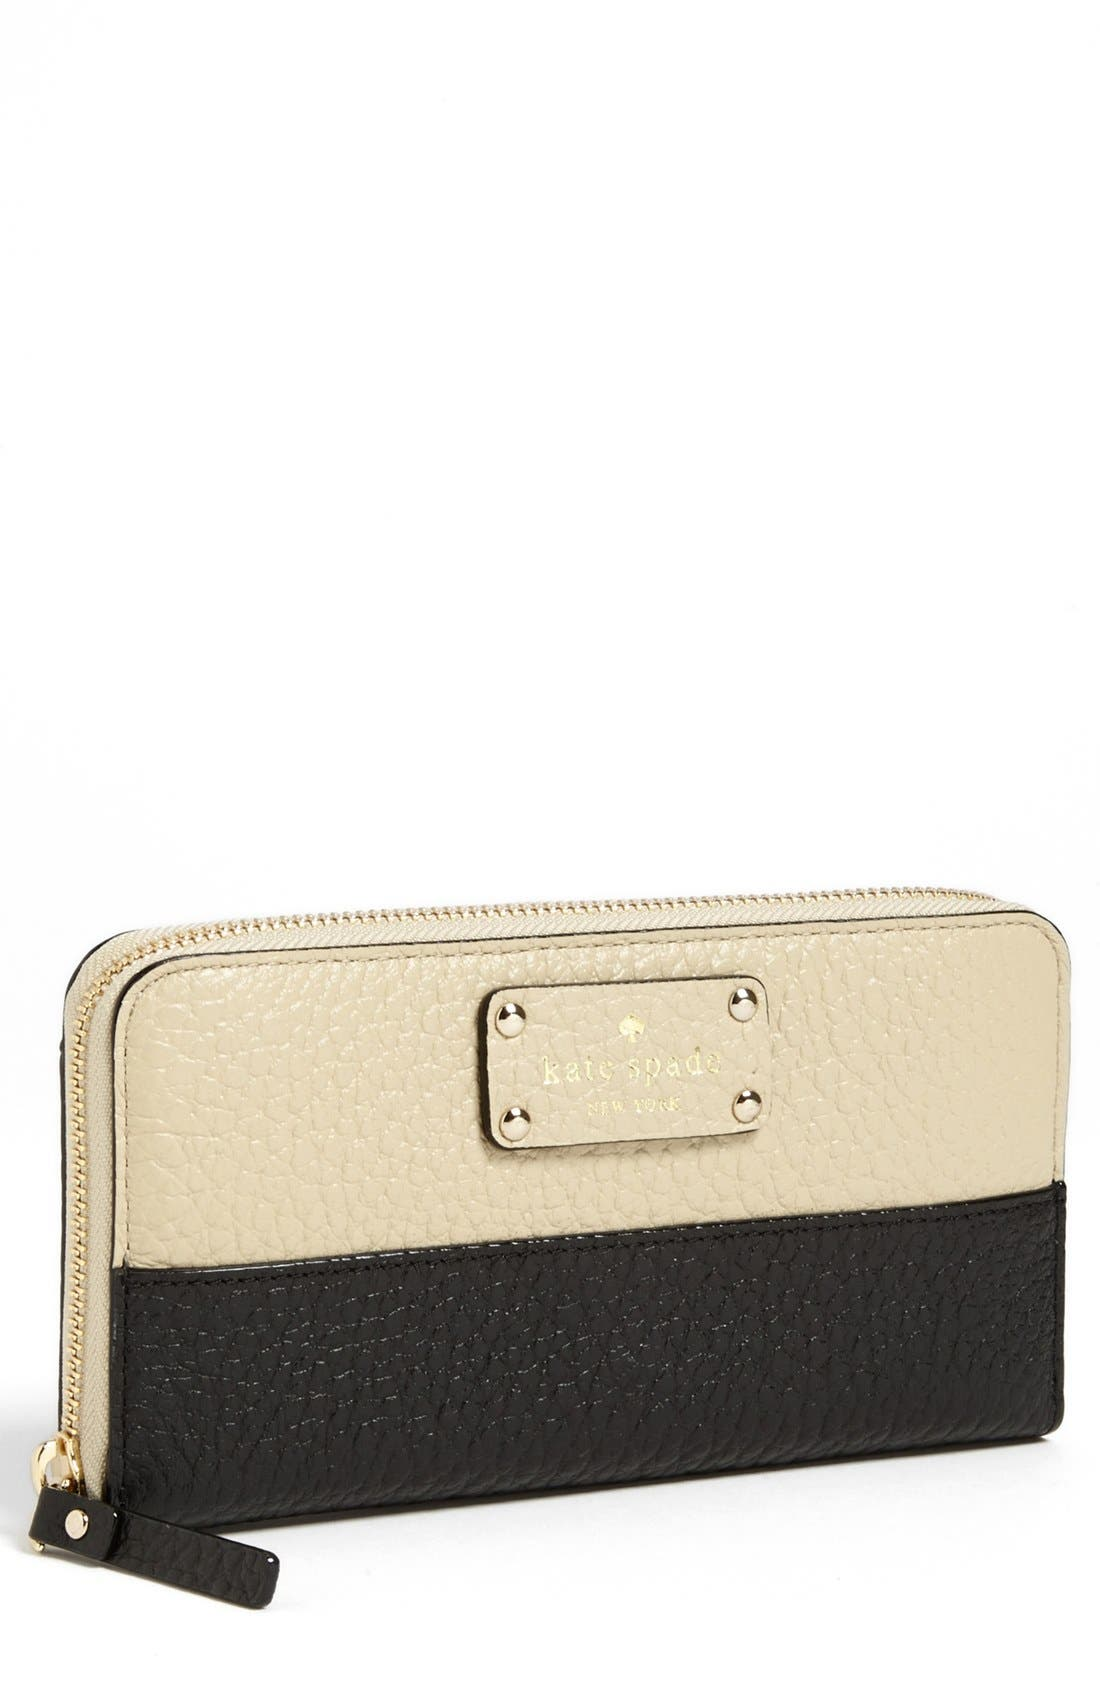 Alternate Image 1 Selected - kate spade new york 'grove court - lacey' zip around wallet